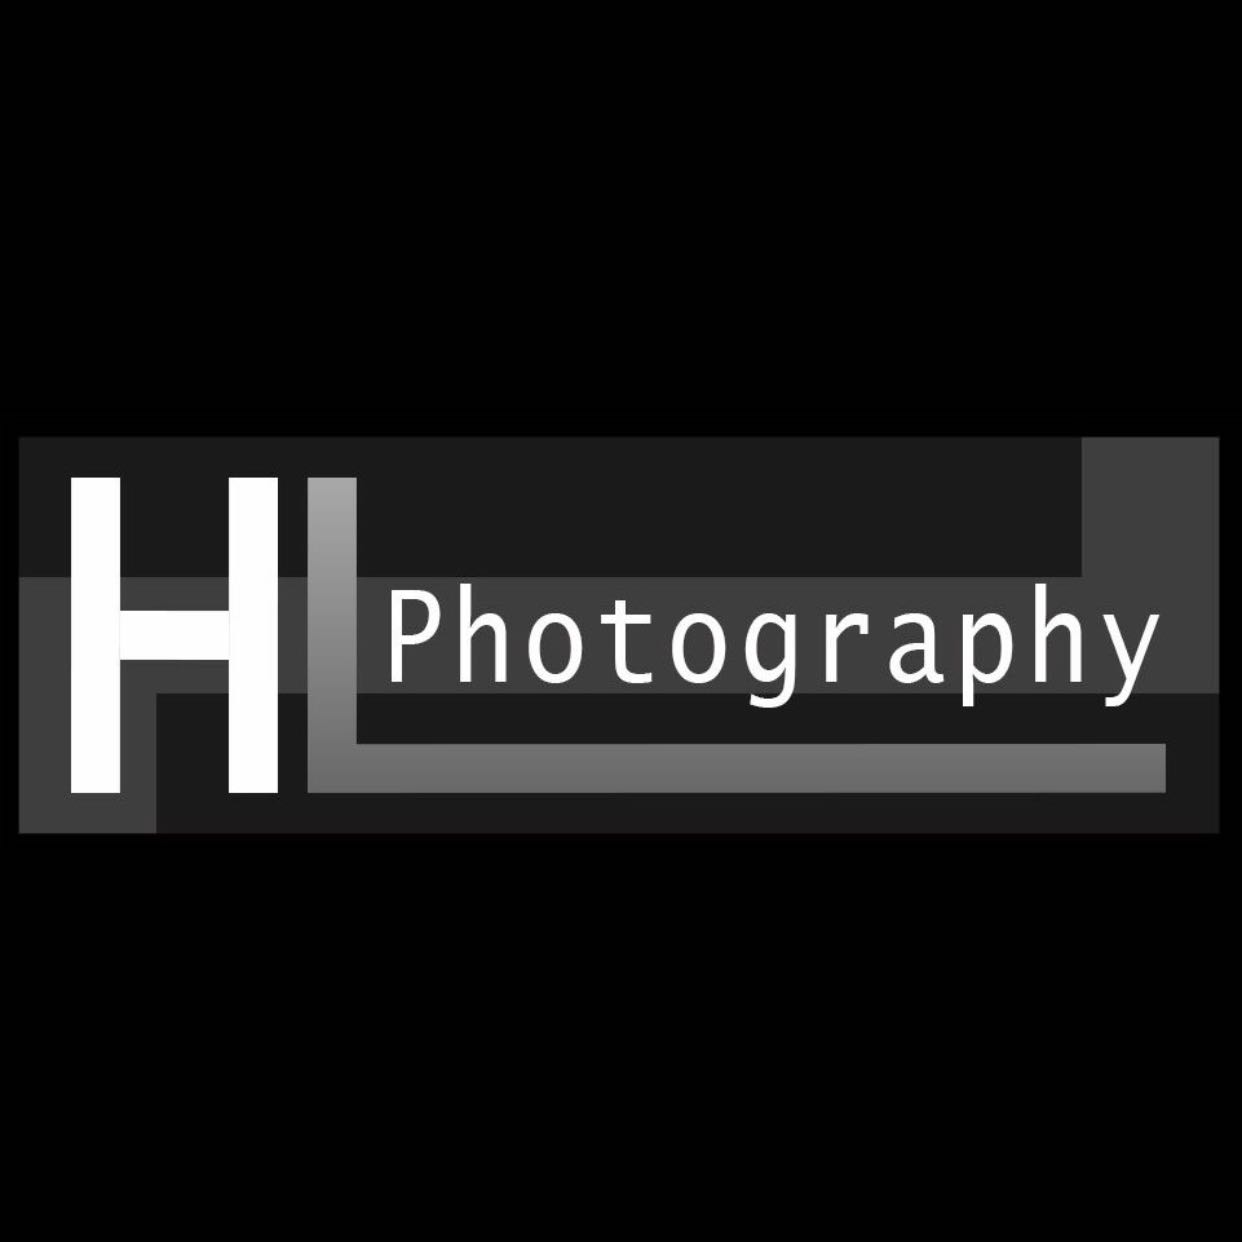 hlphotography